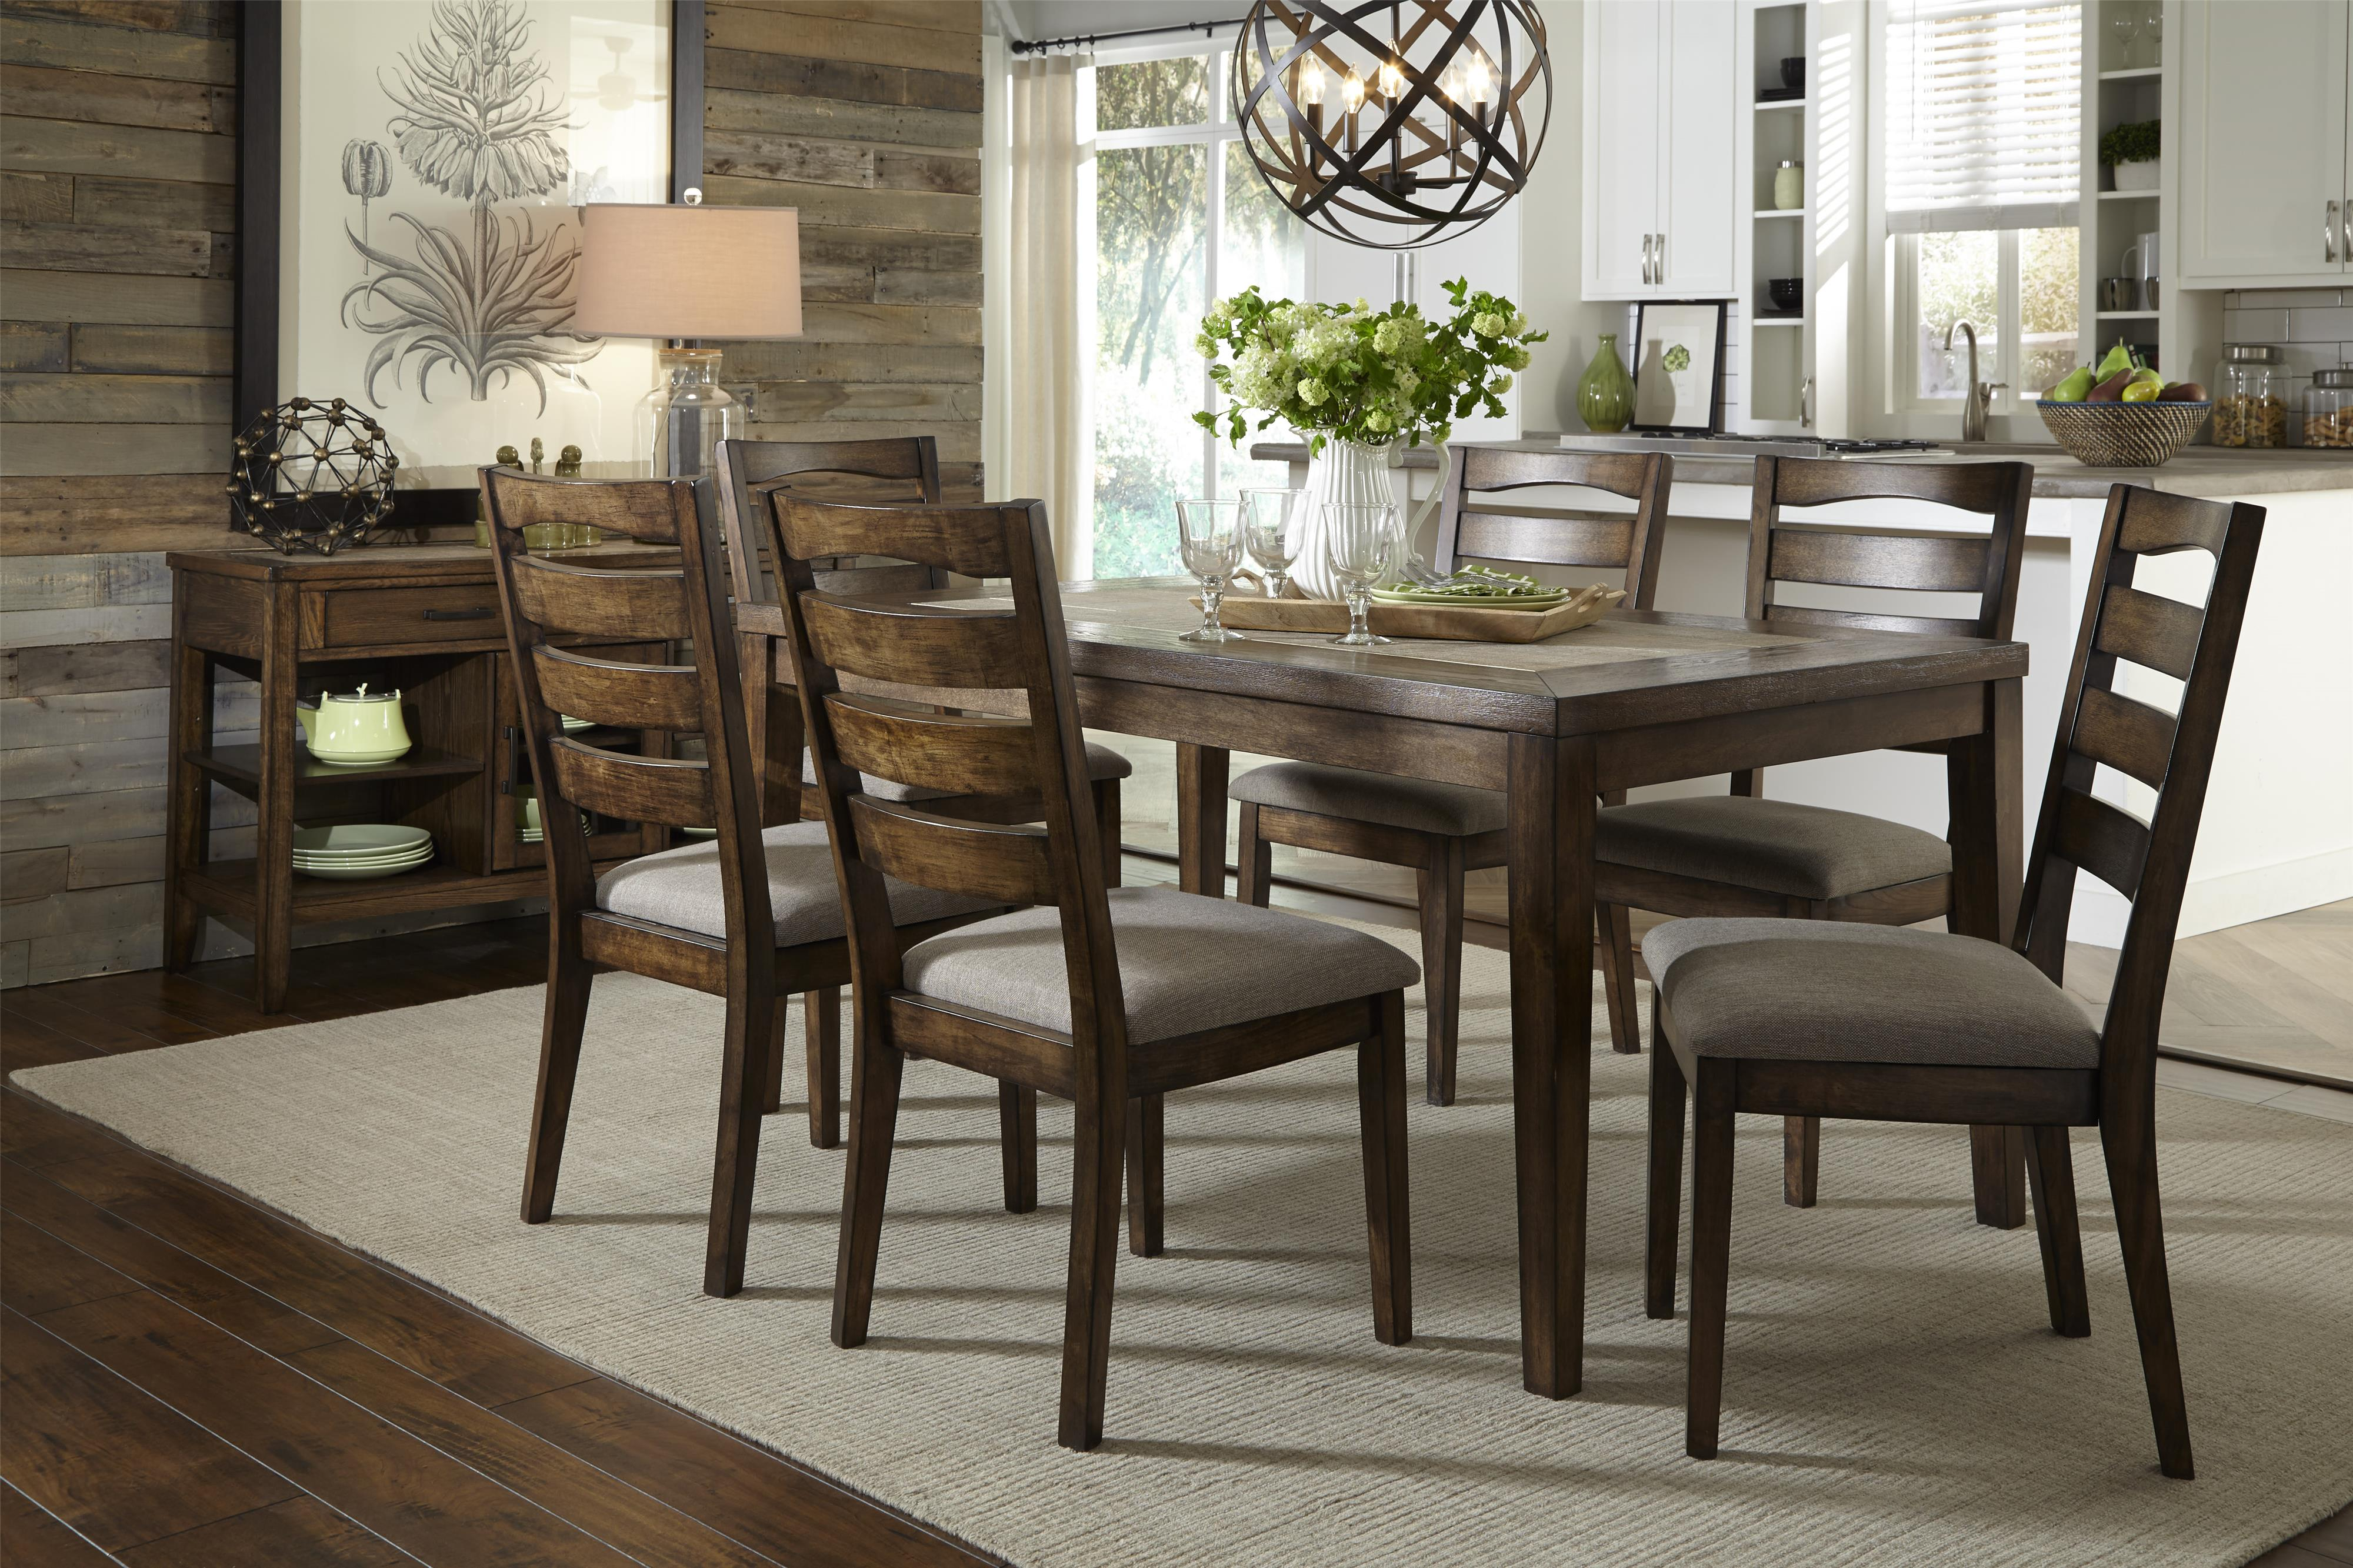 Progressive Furniture Forest Brook Casual Dining Room Group - Item Number: P378D-10+56+6x61